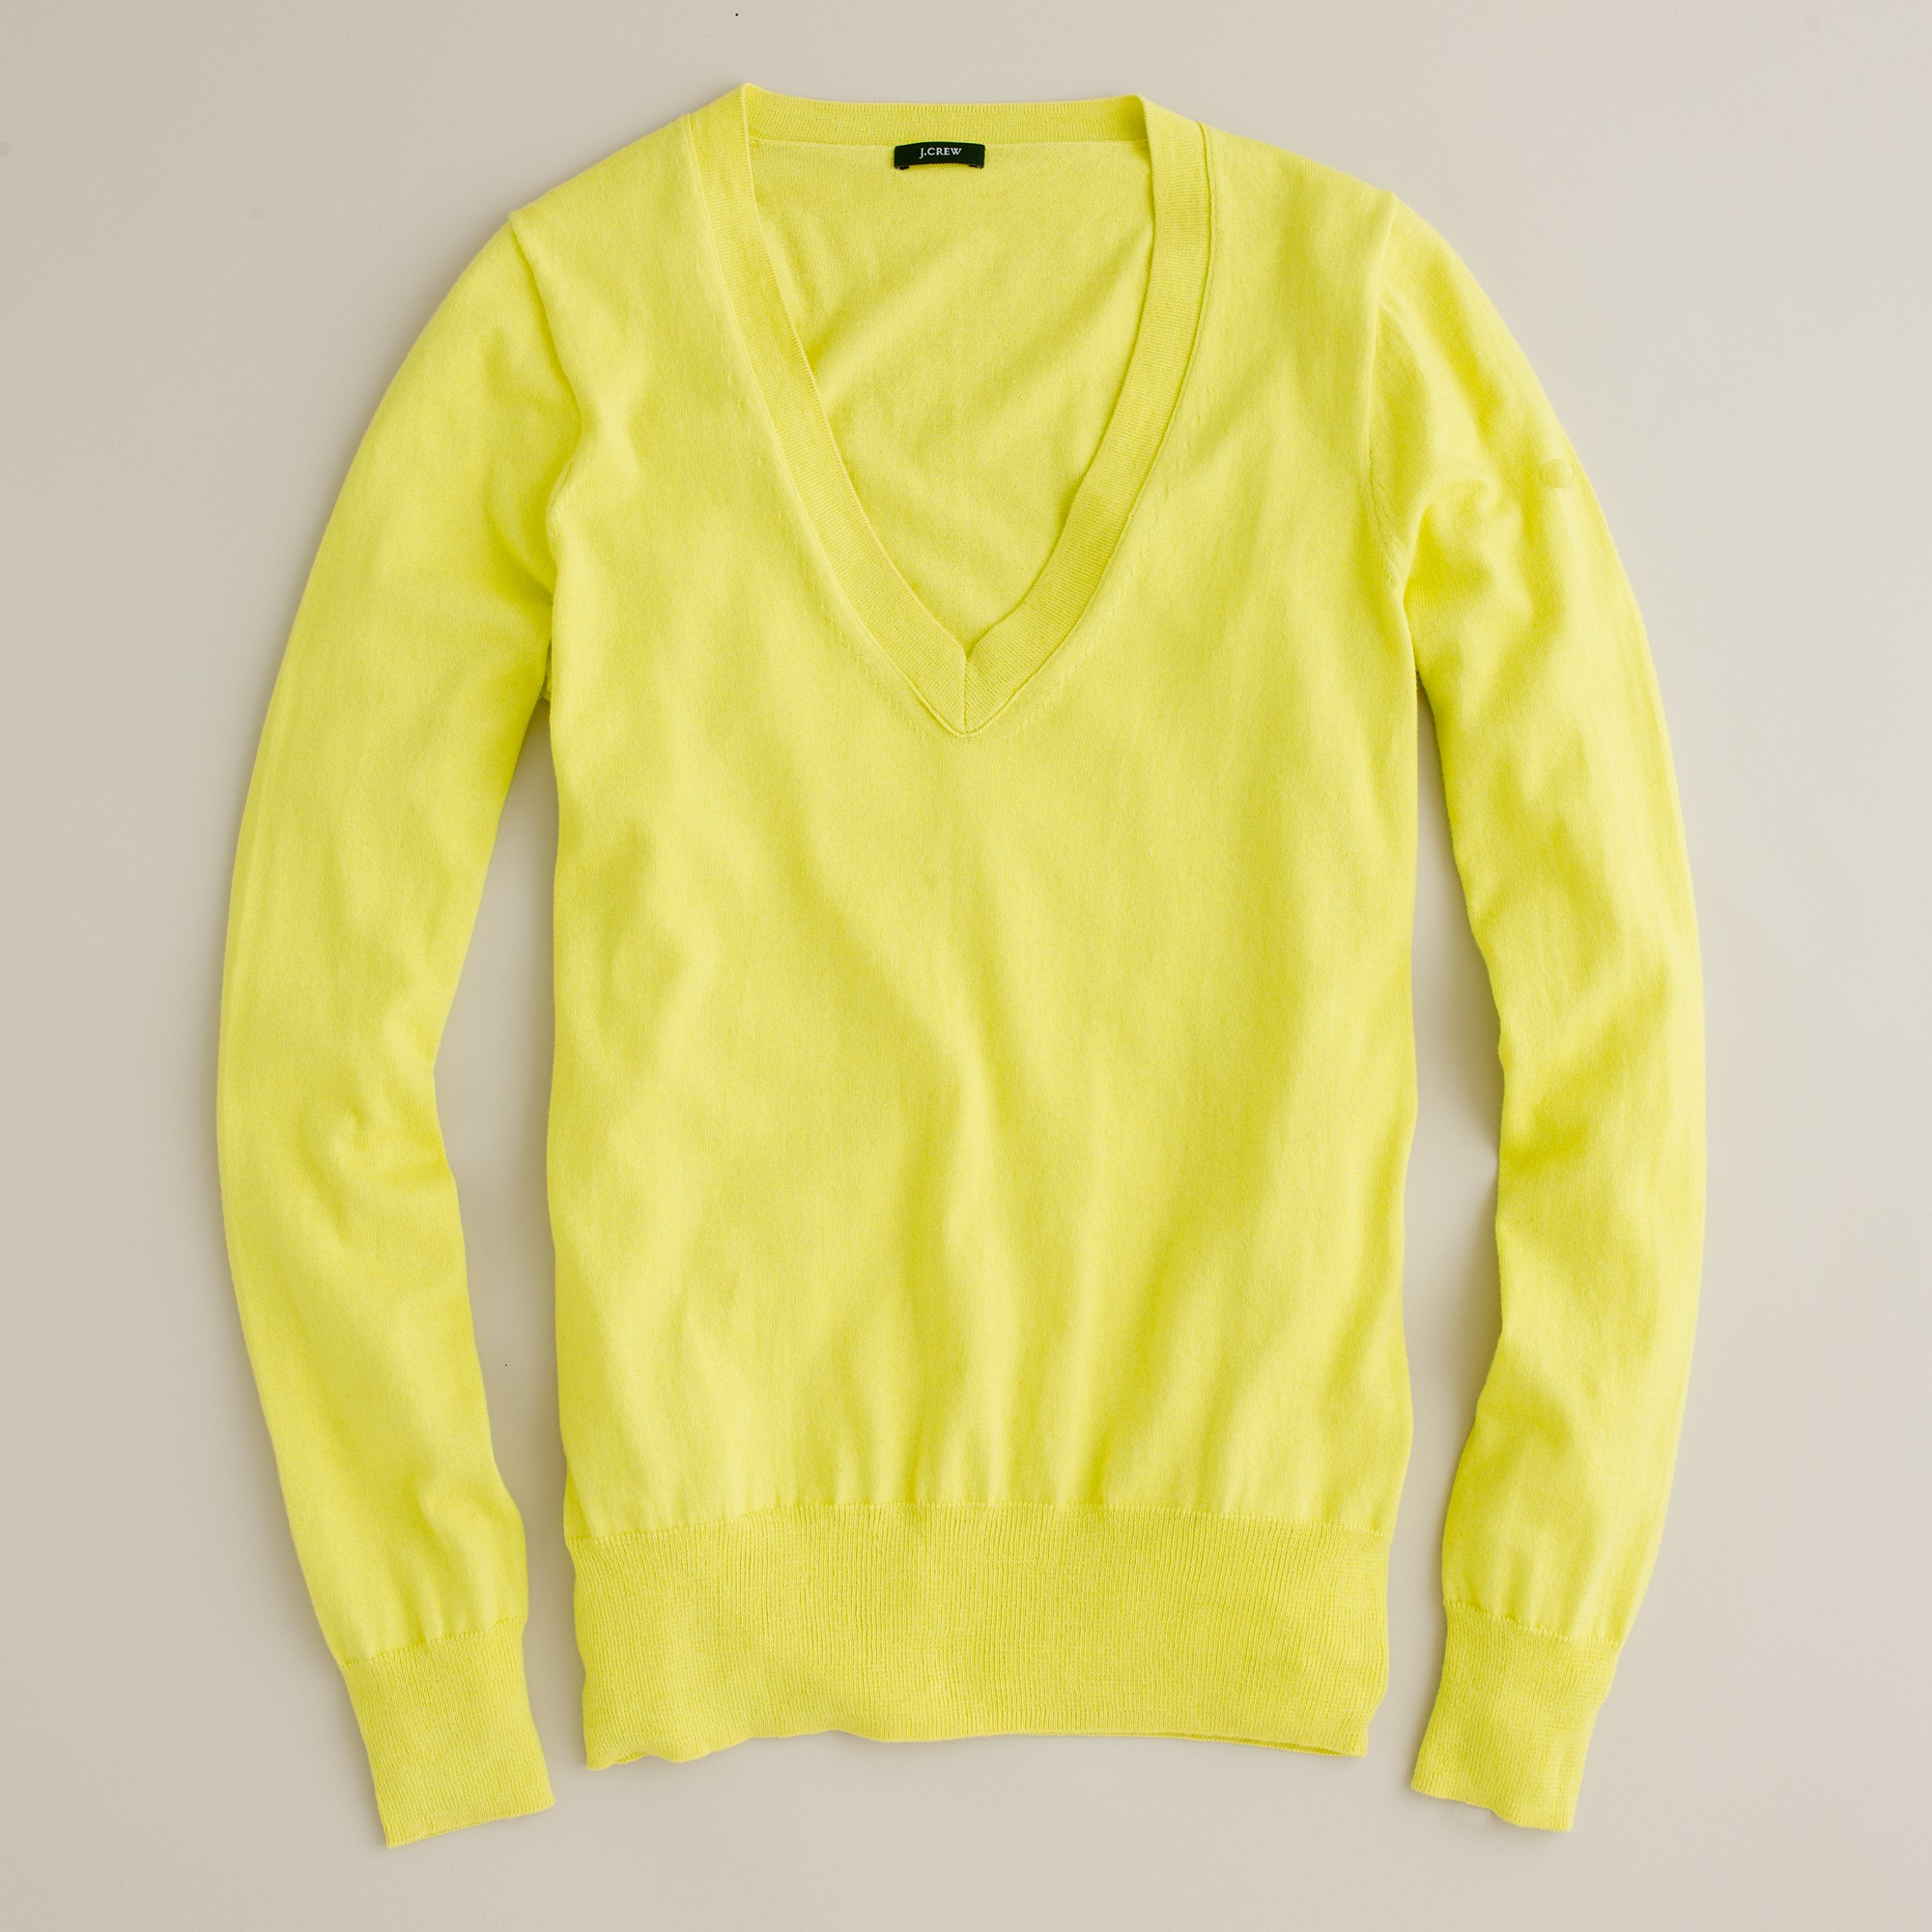 J.crew Cotton V-neck Sweater in Yellow | Lyst